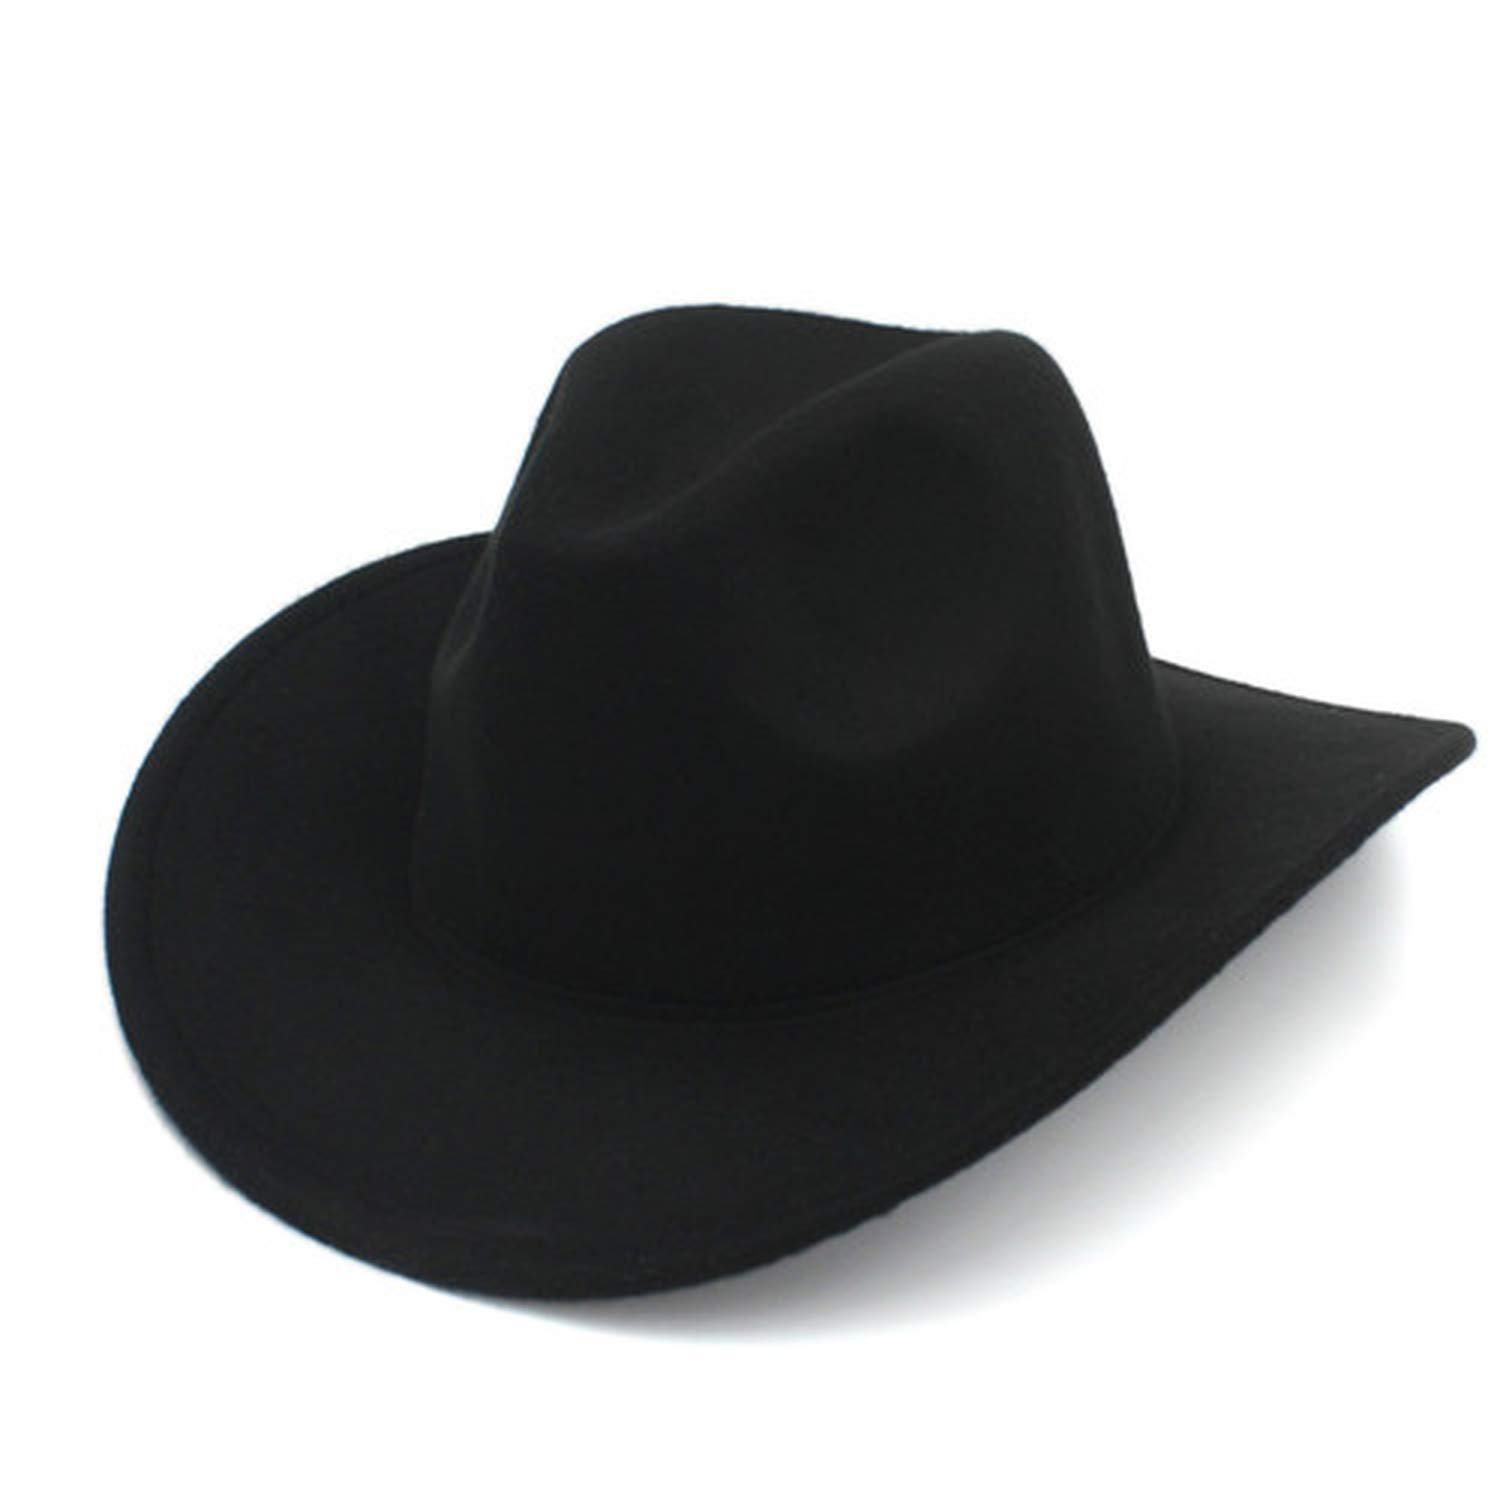 KKONION Fashion Winter Autumn Wool Men Women Fashion Felt Fedora Hat Western Cowboy Cowgirl Cap Jazz hat